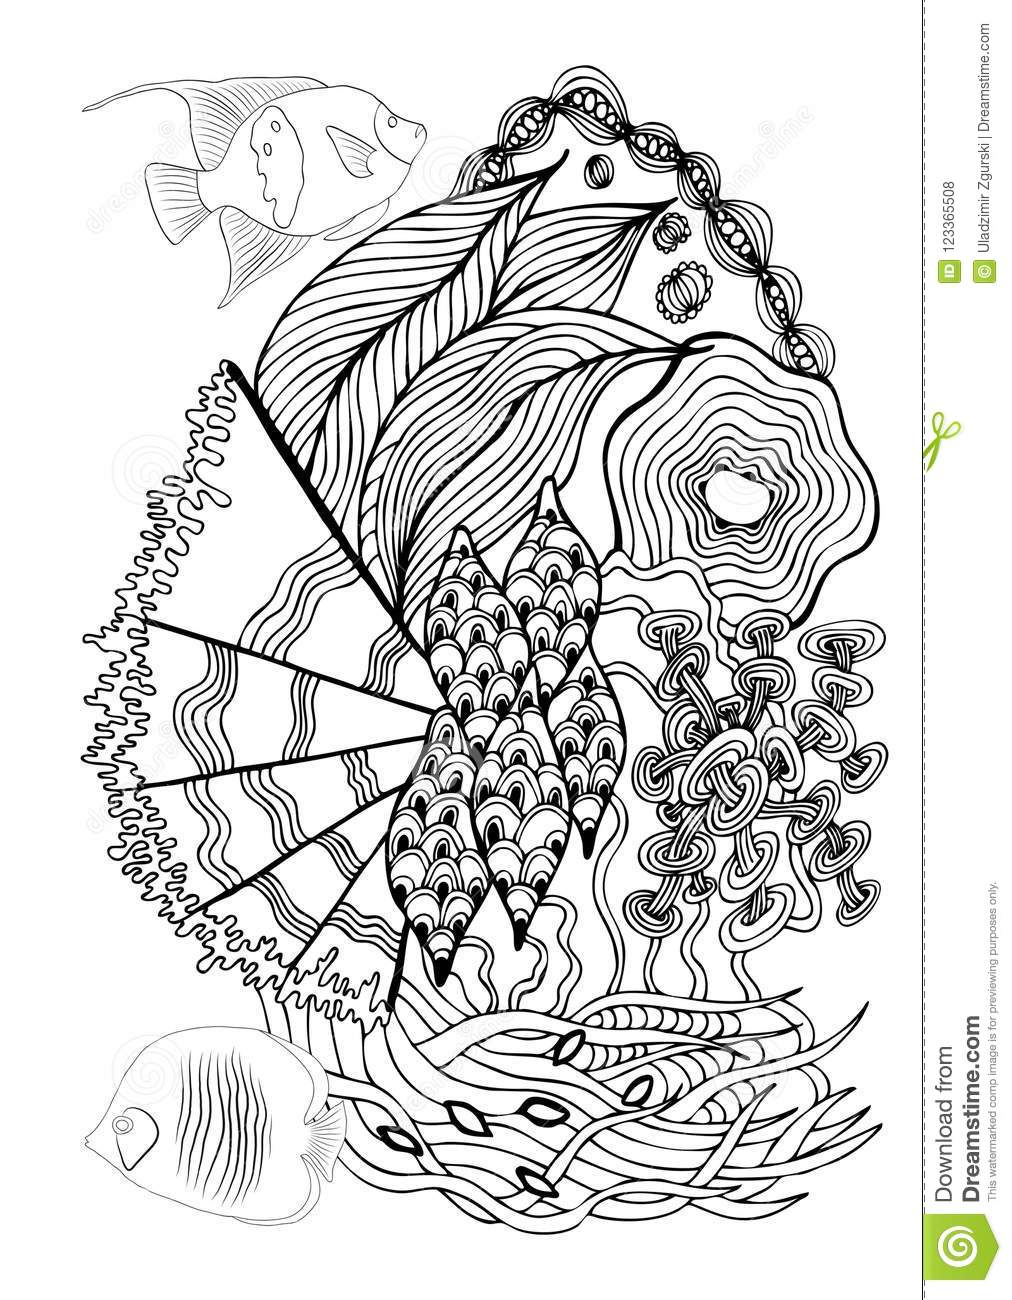 Hand Drawn Page In Zendoodle Style For Adult Coloring Book ...